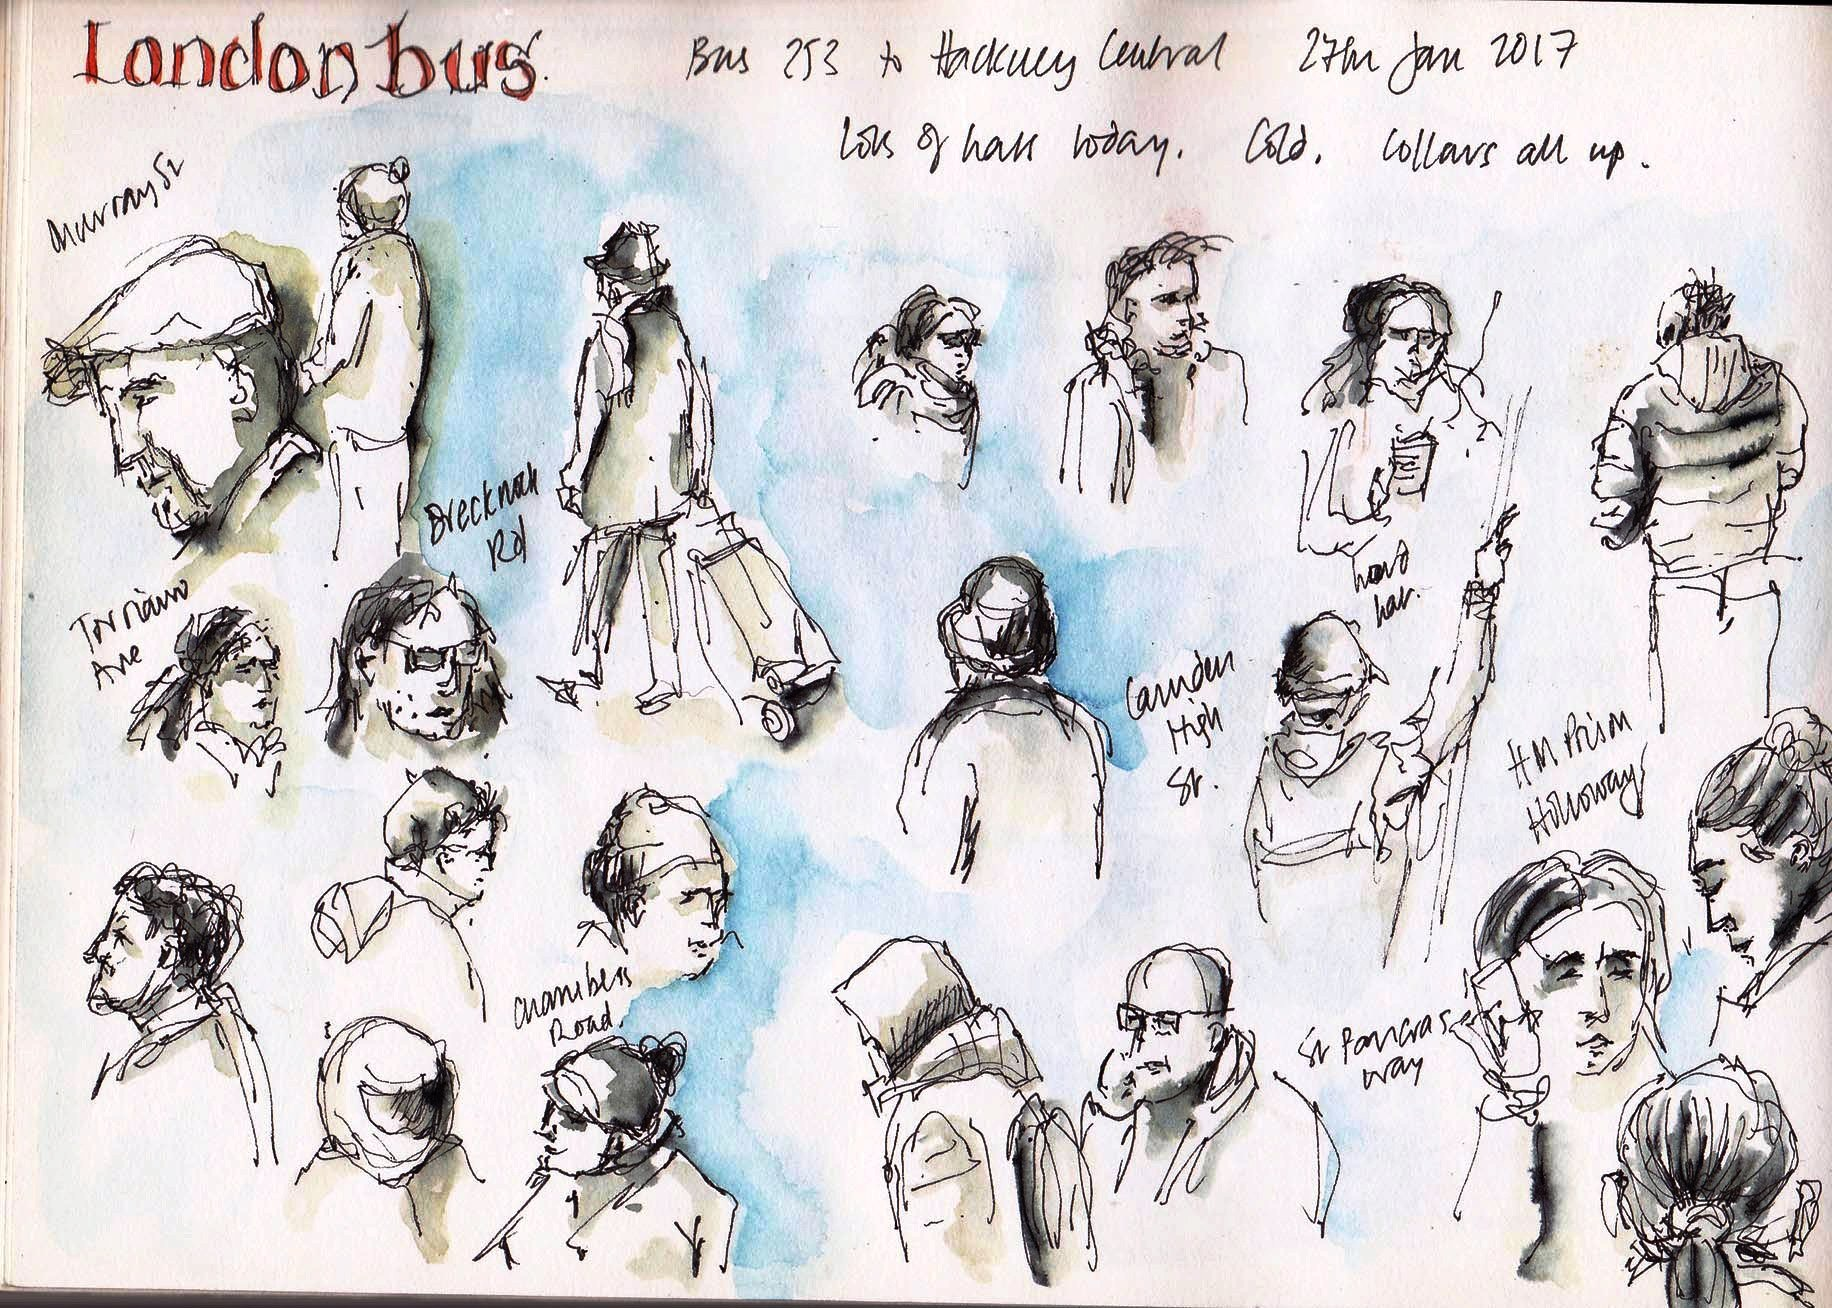 sketches from a london bus